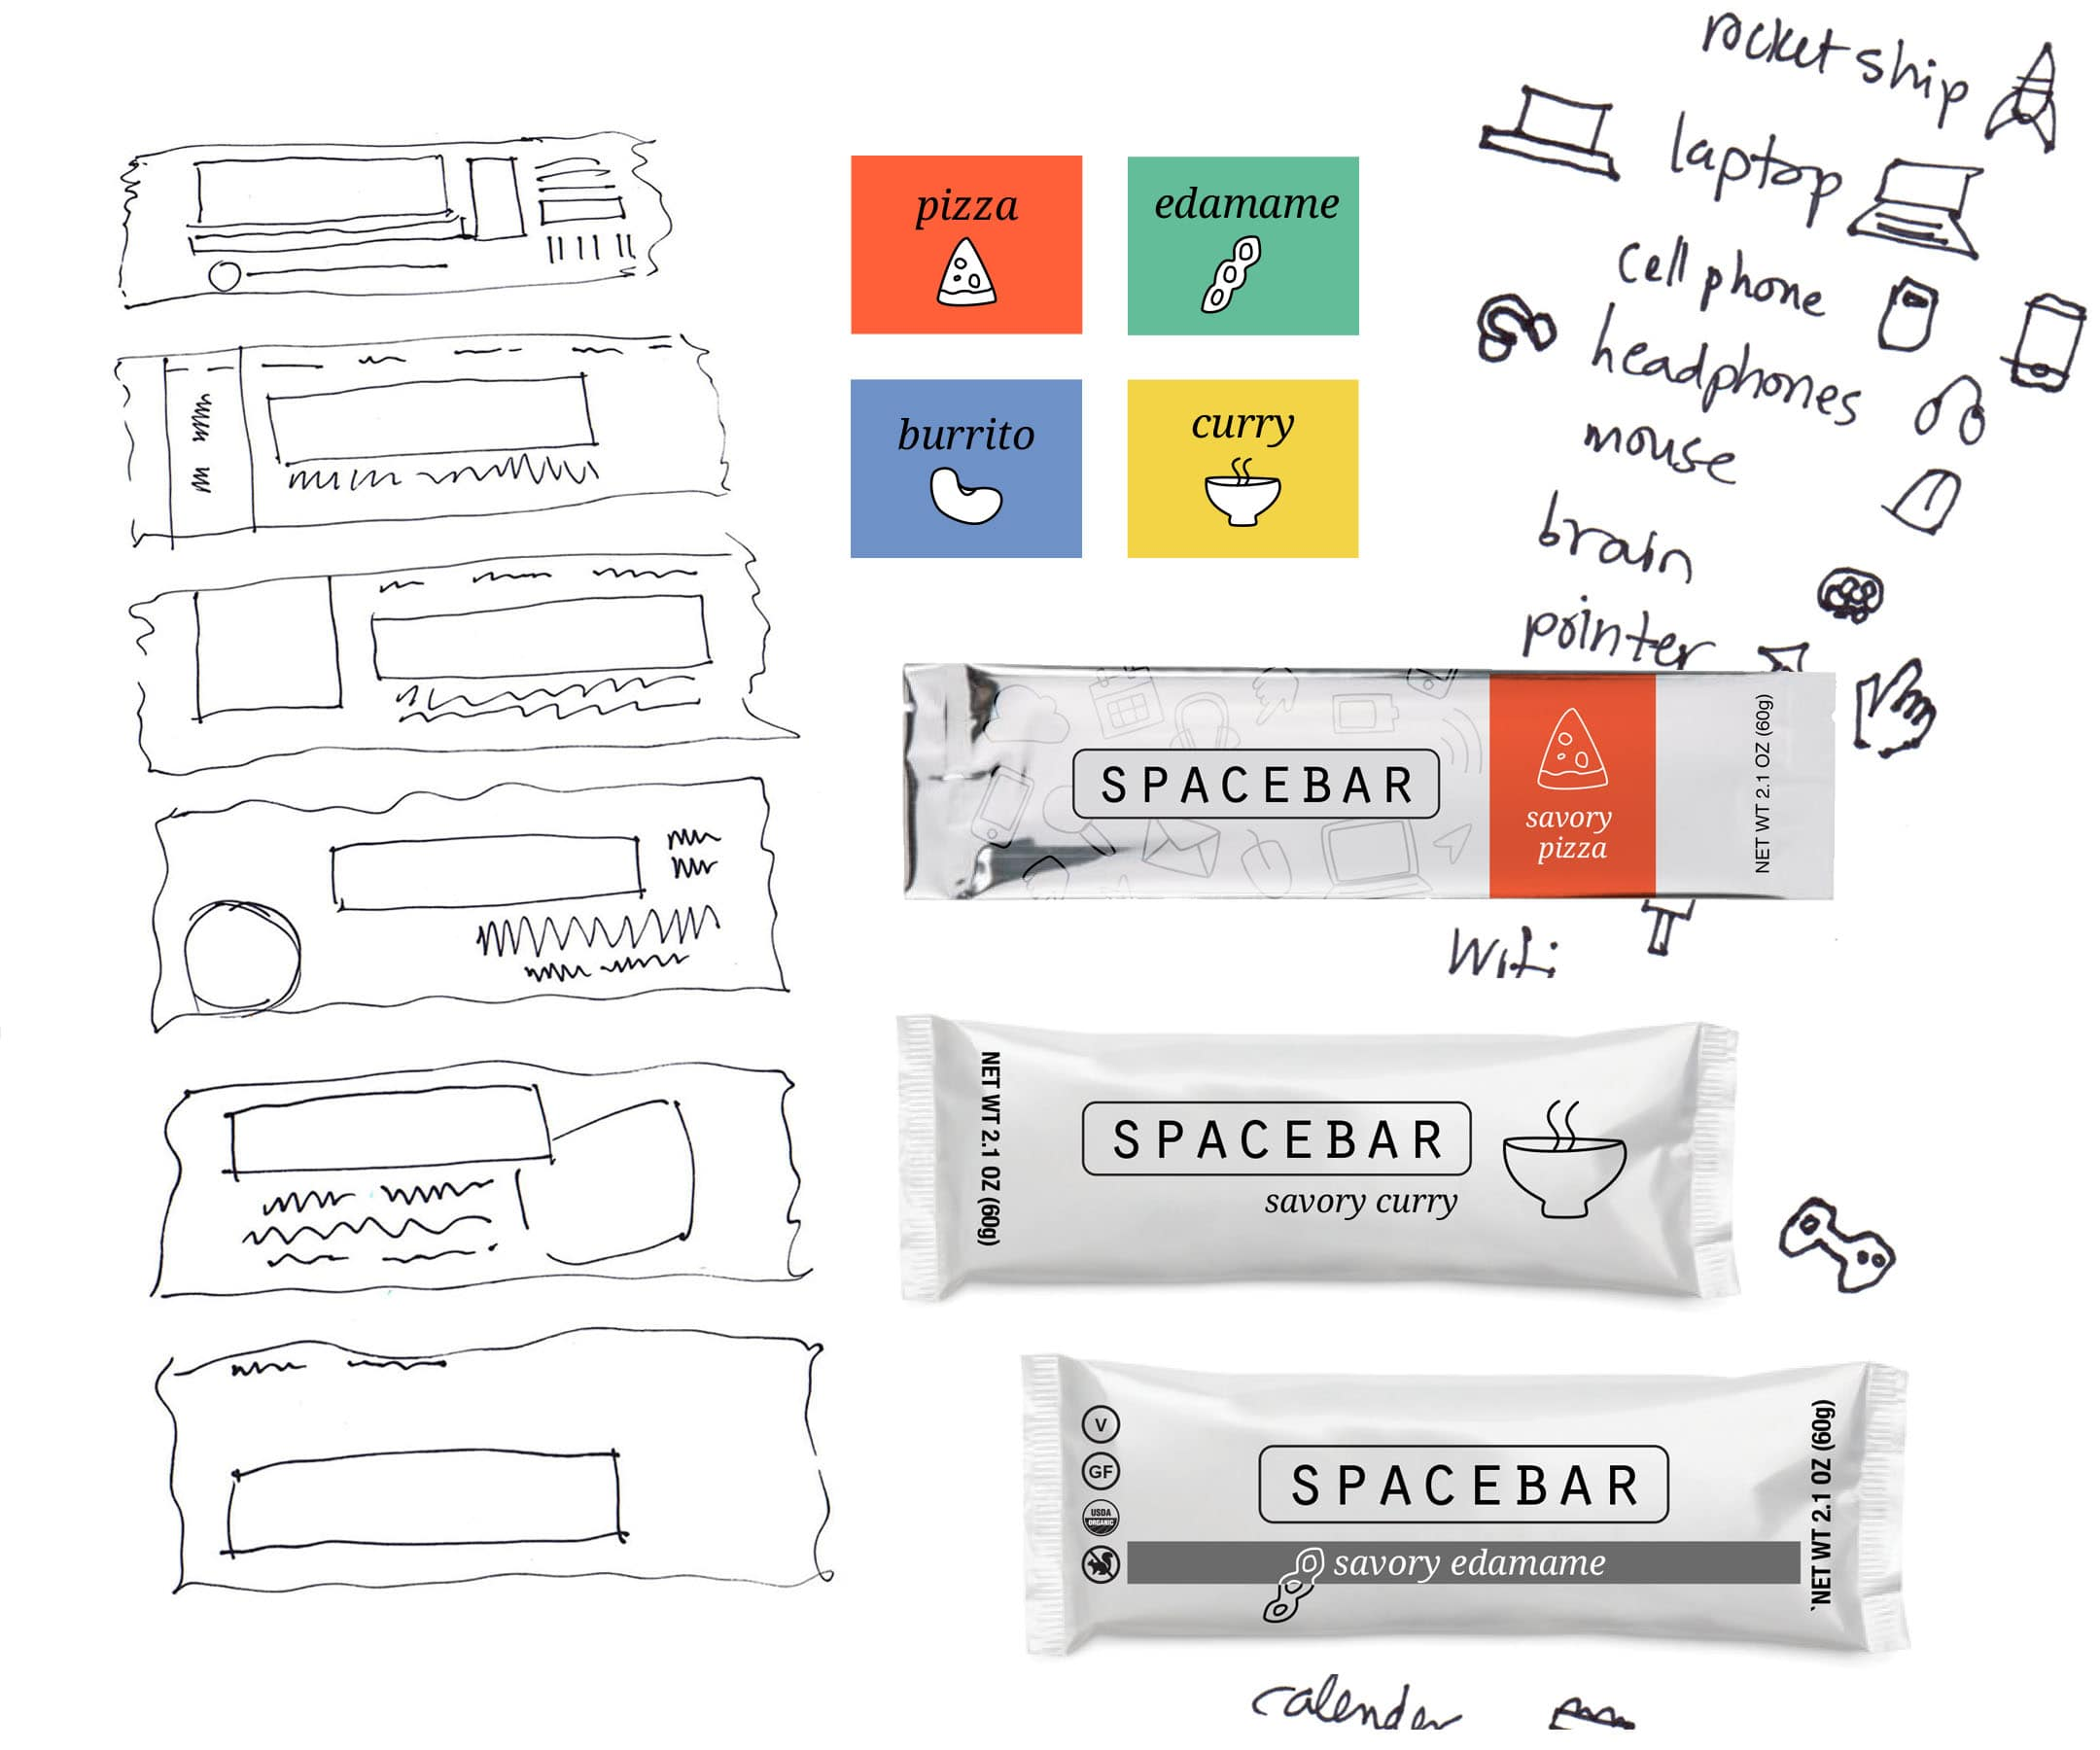 sketches and mockups of packaging ideas